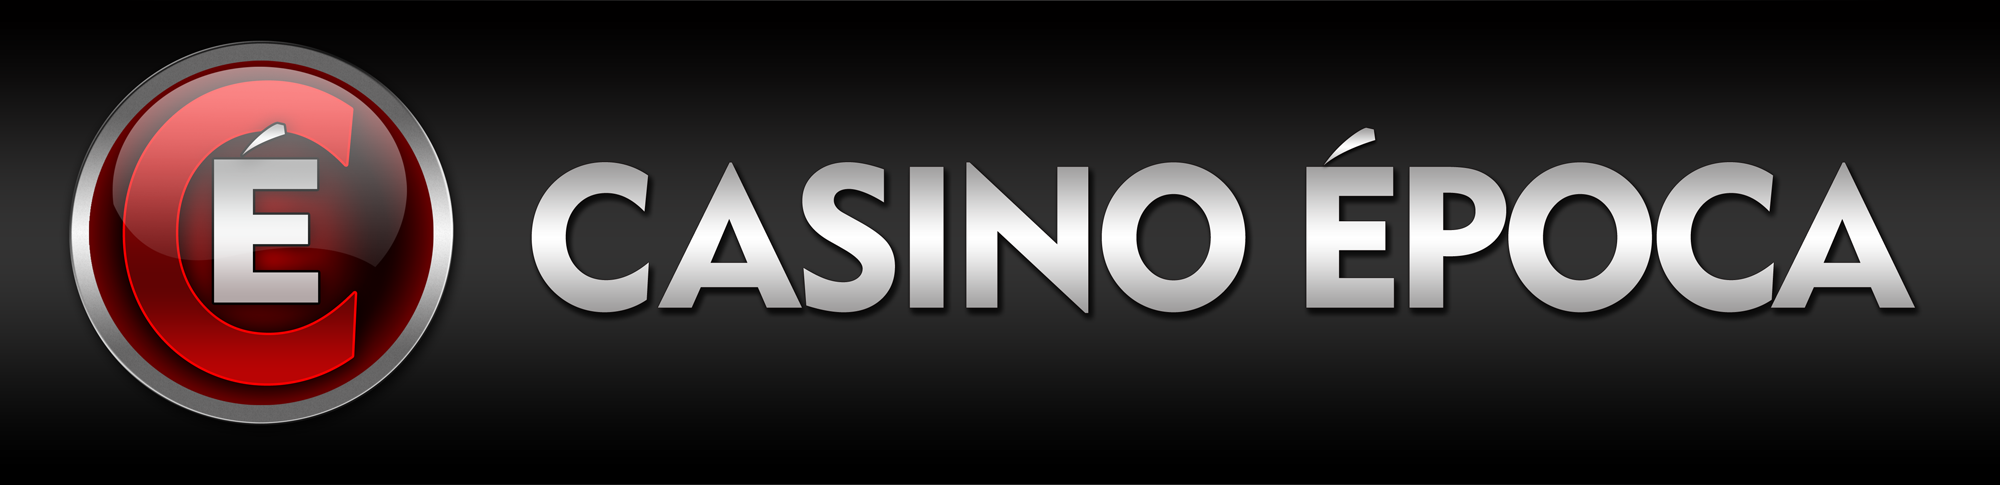 Casino epoca mobile 5 free